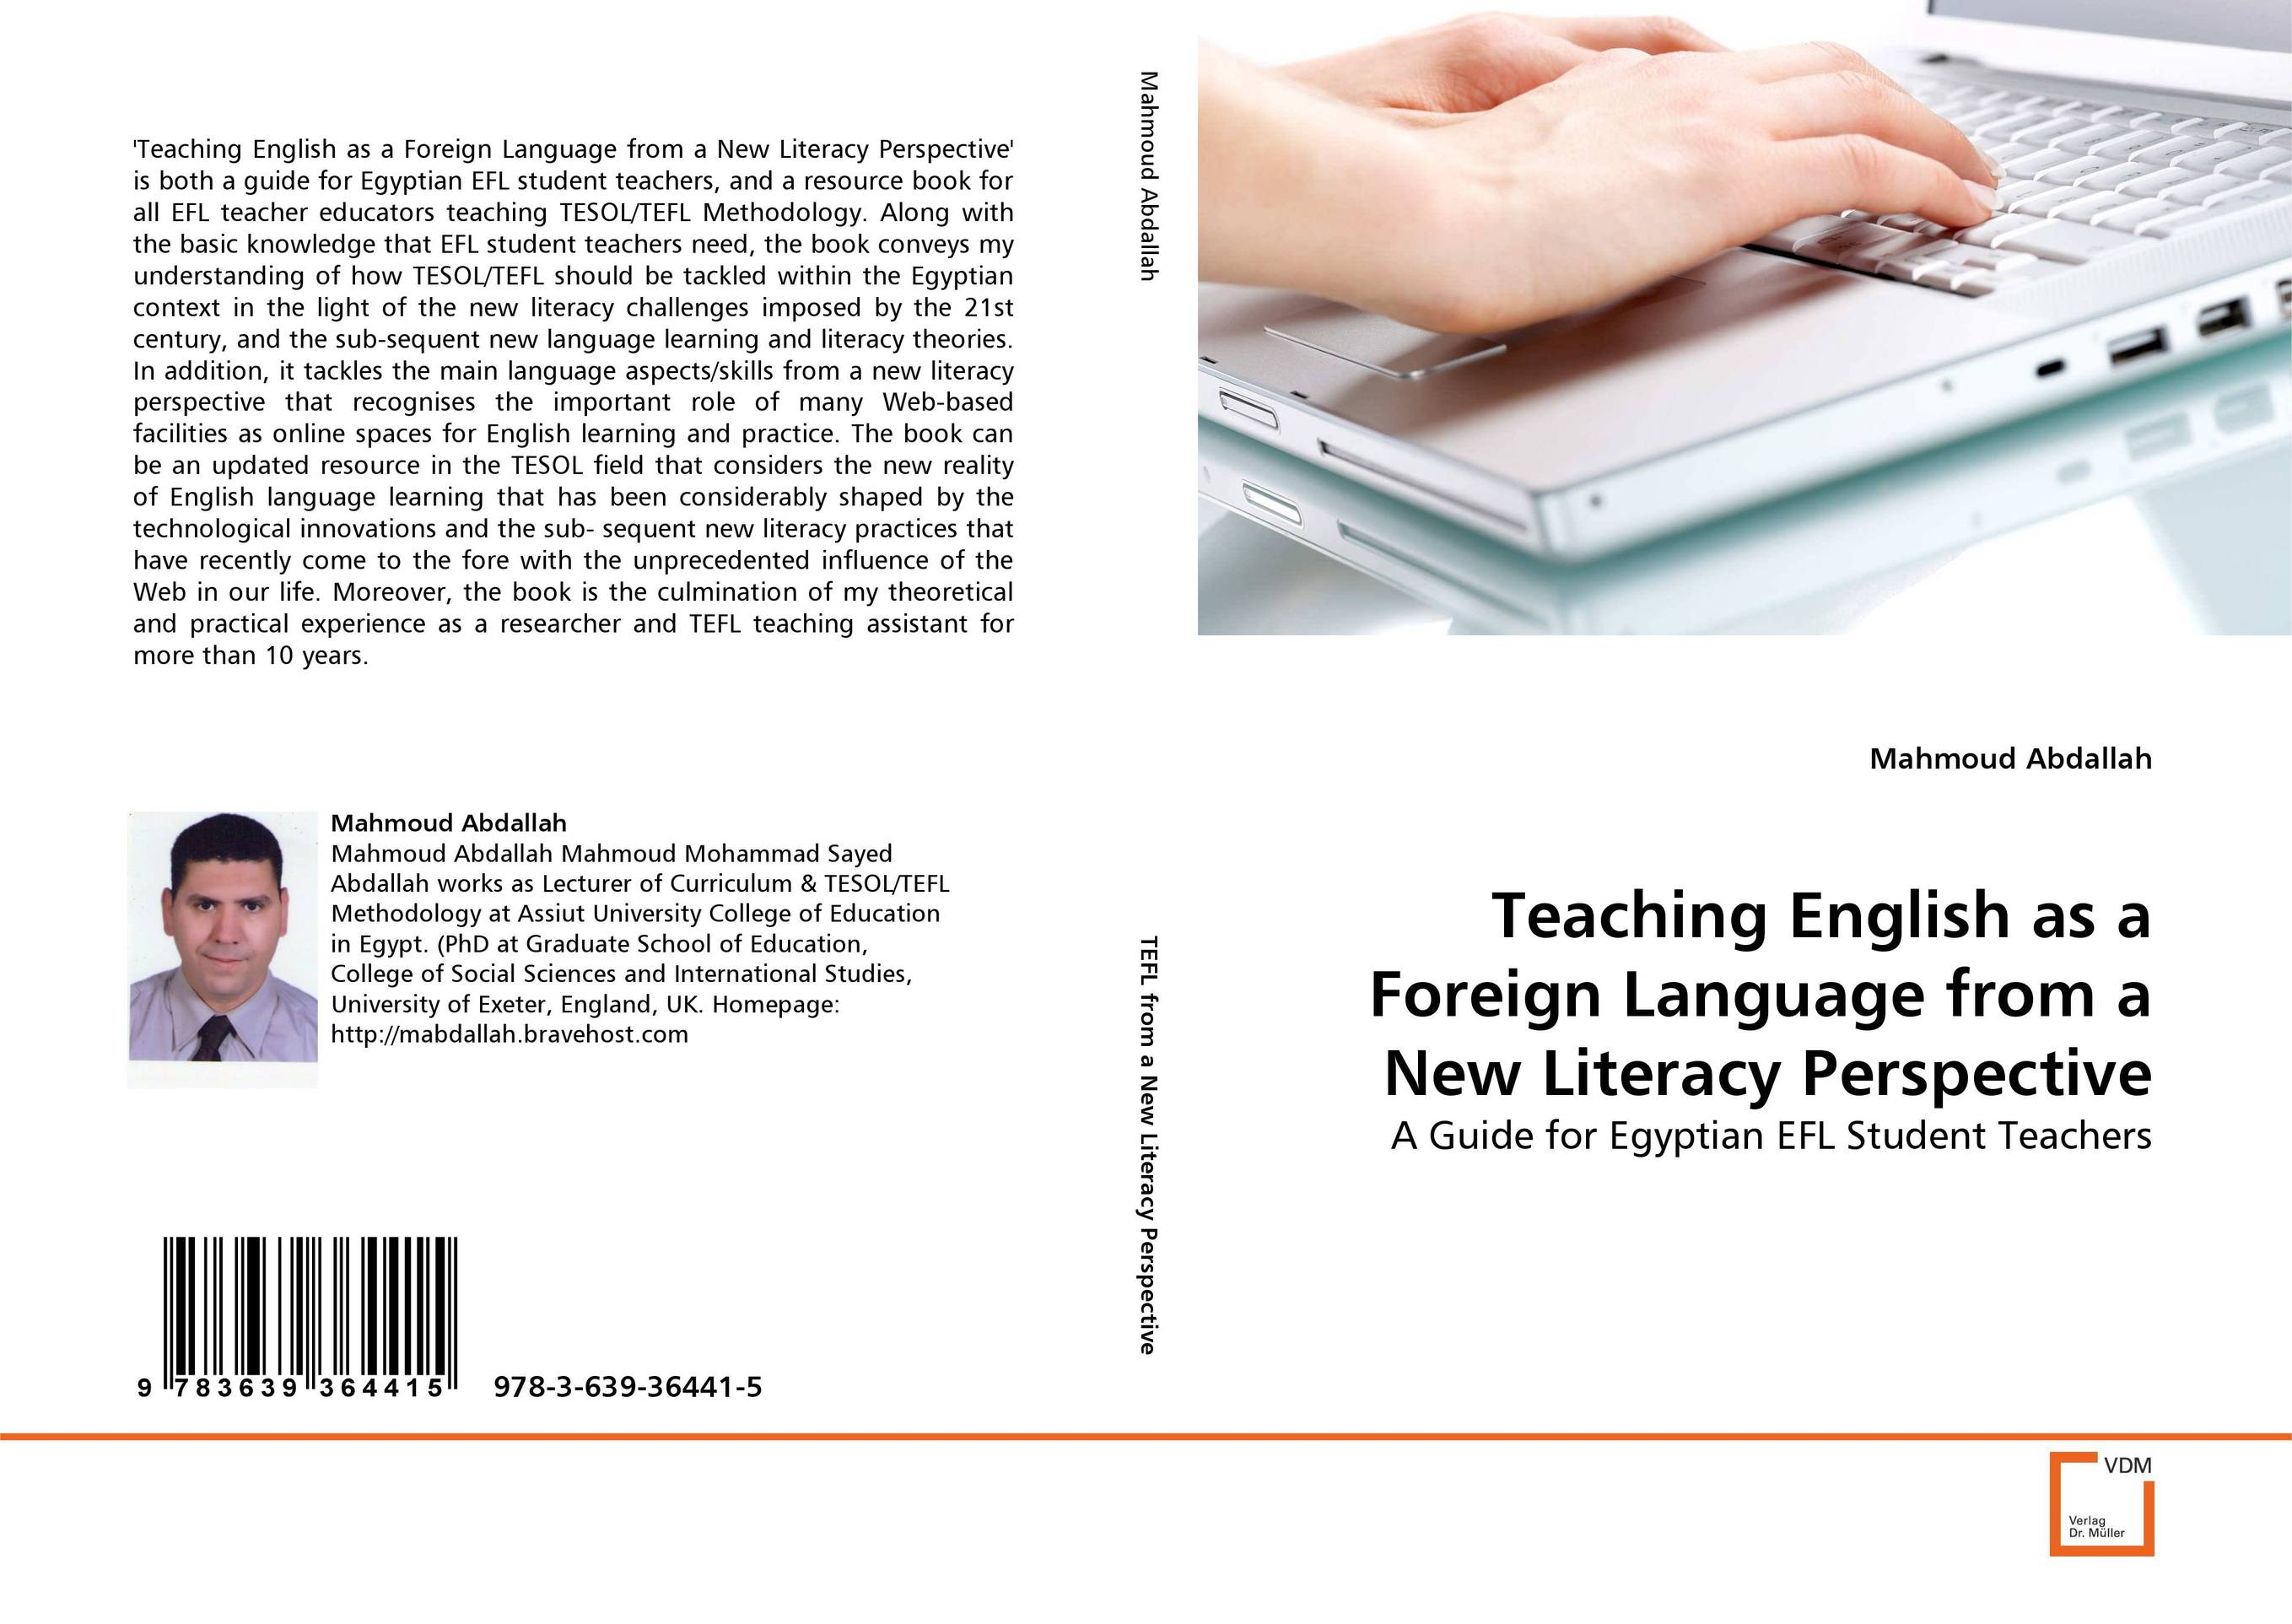 Teaching English as a Foreign Language from a New Literacy Perspective csp as a coordination language